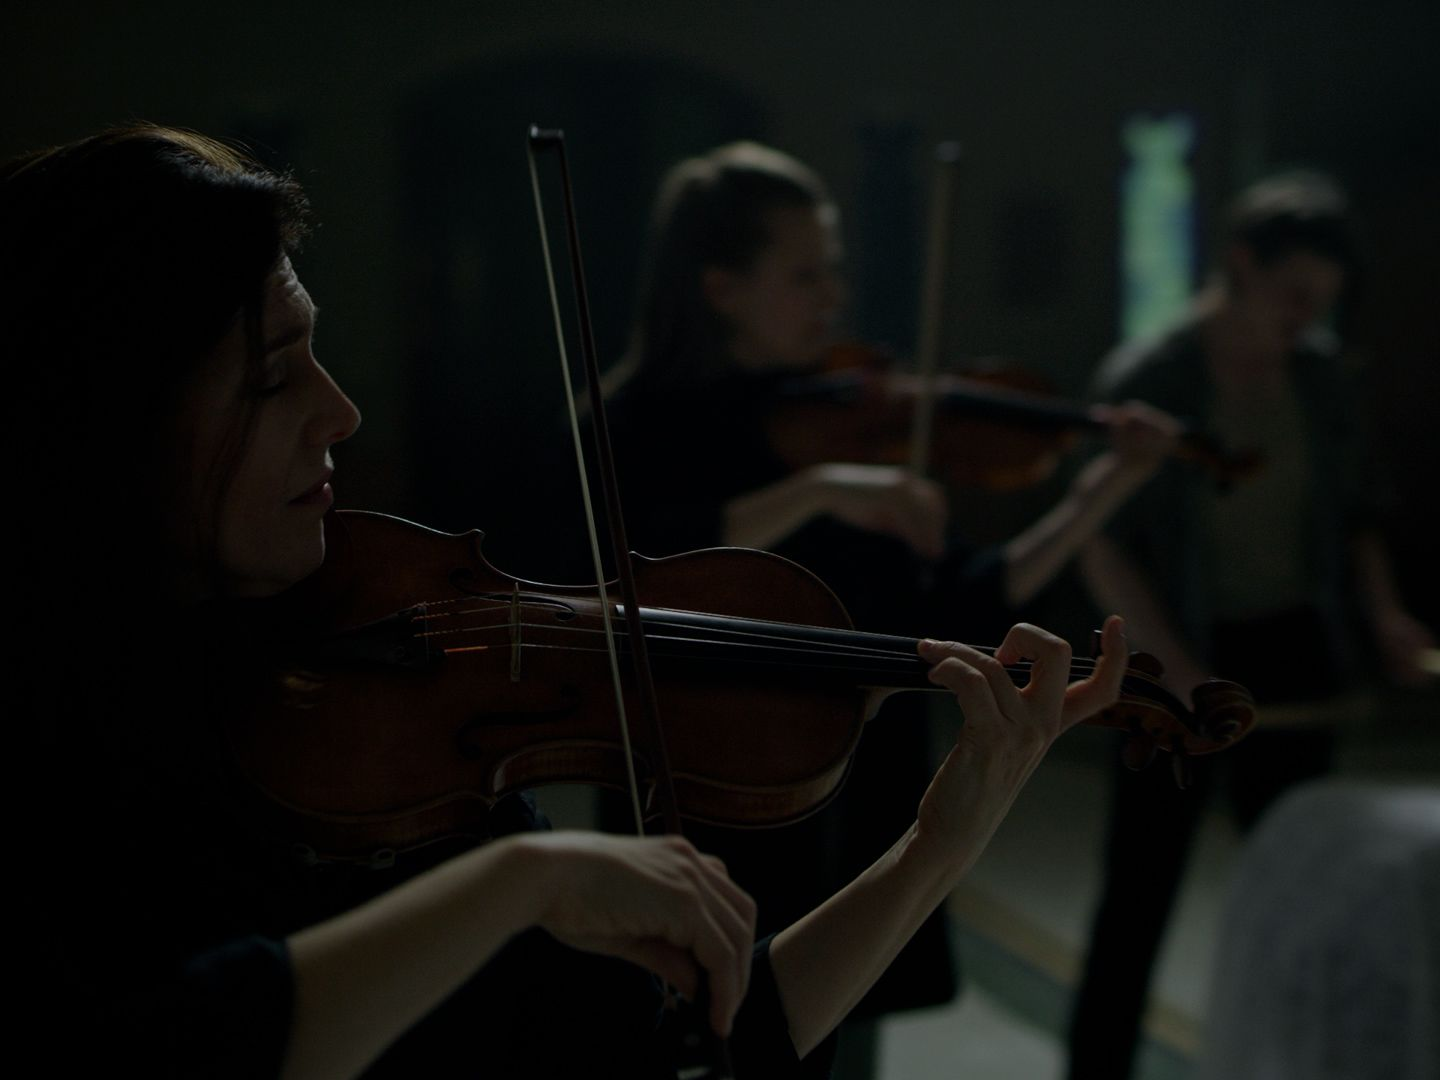 Two women are playing violin in a dark room, there is a third musician on the right.